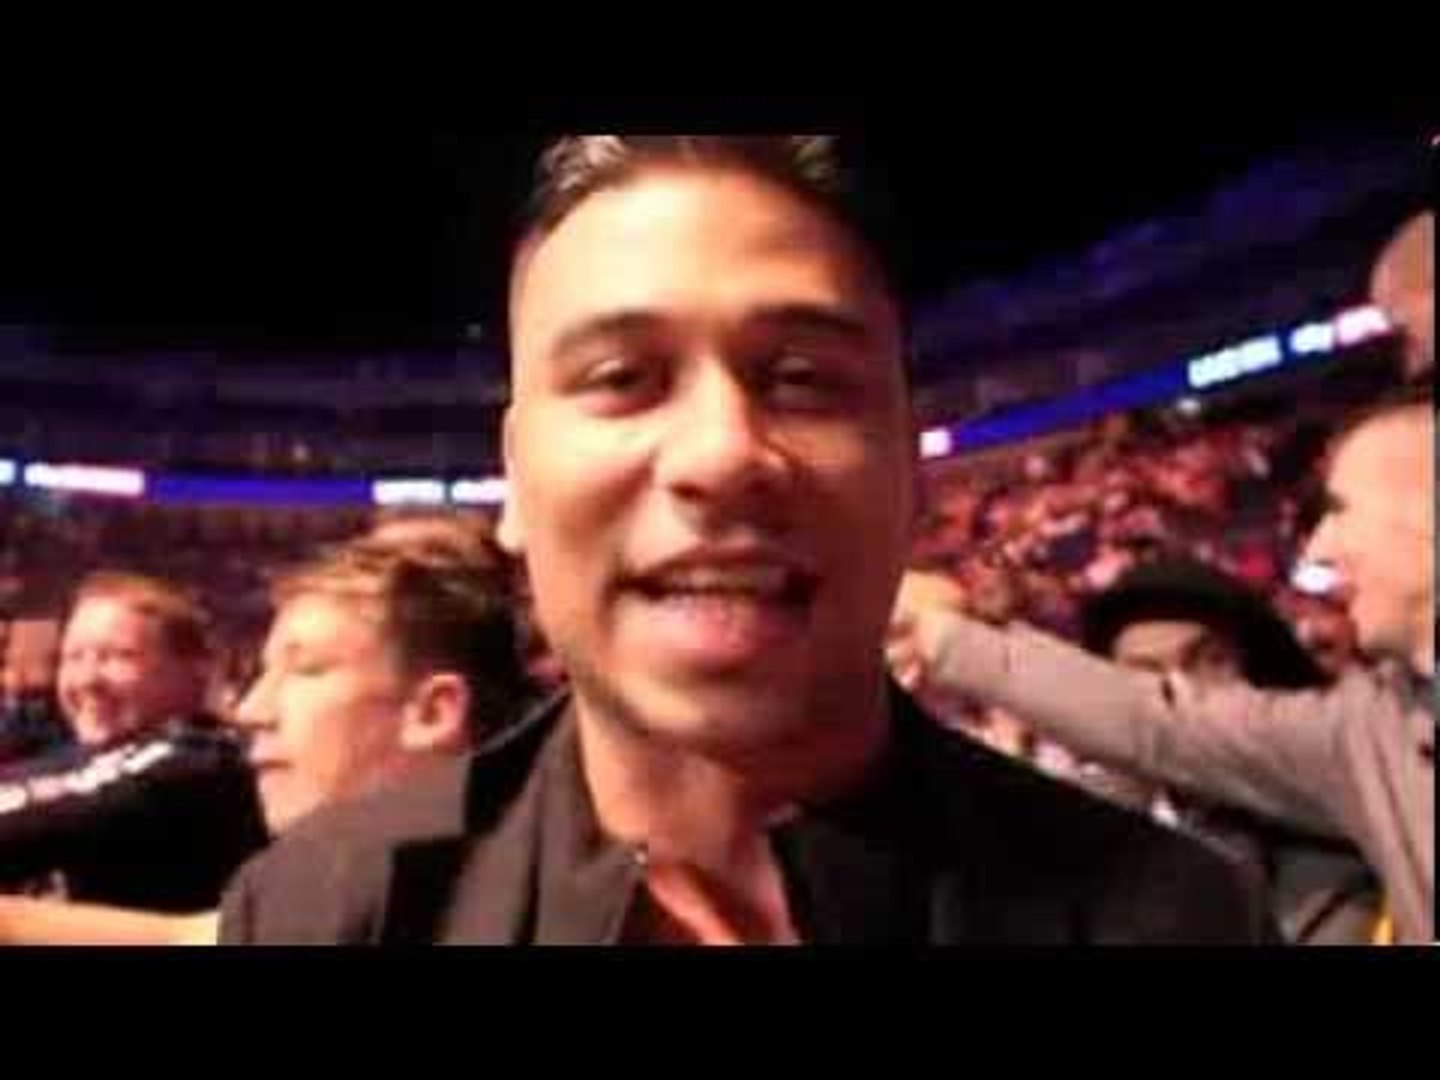 RICKY NORWOOD (EASTENDERS' FATBOY) SAYS ANTHONY JOSHUA WILL 'DOMINATE THE SPORT' / CA